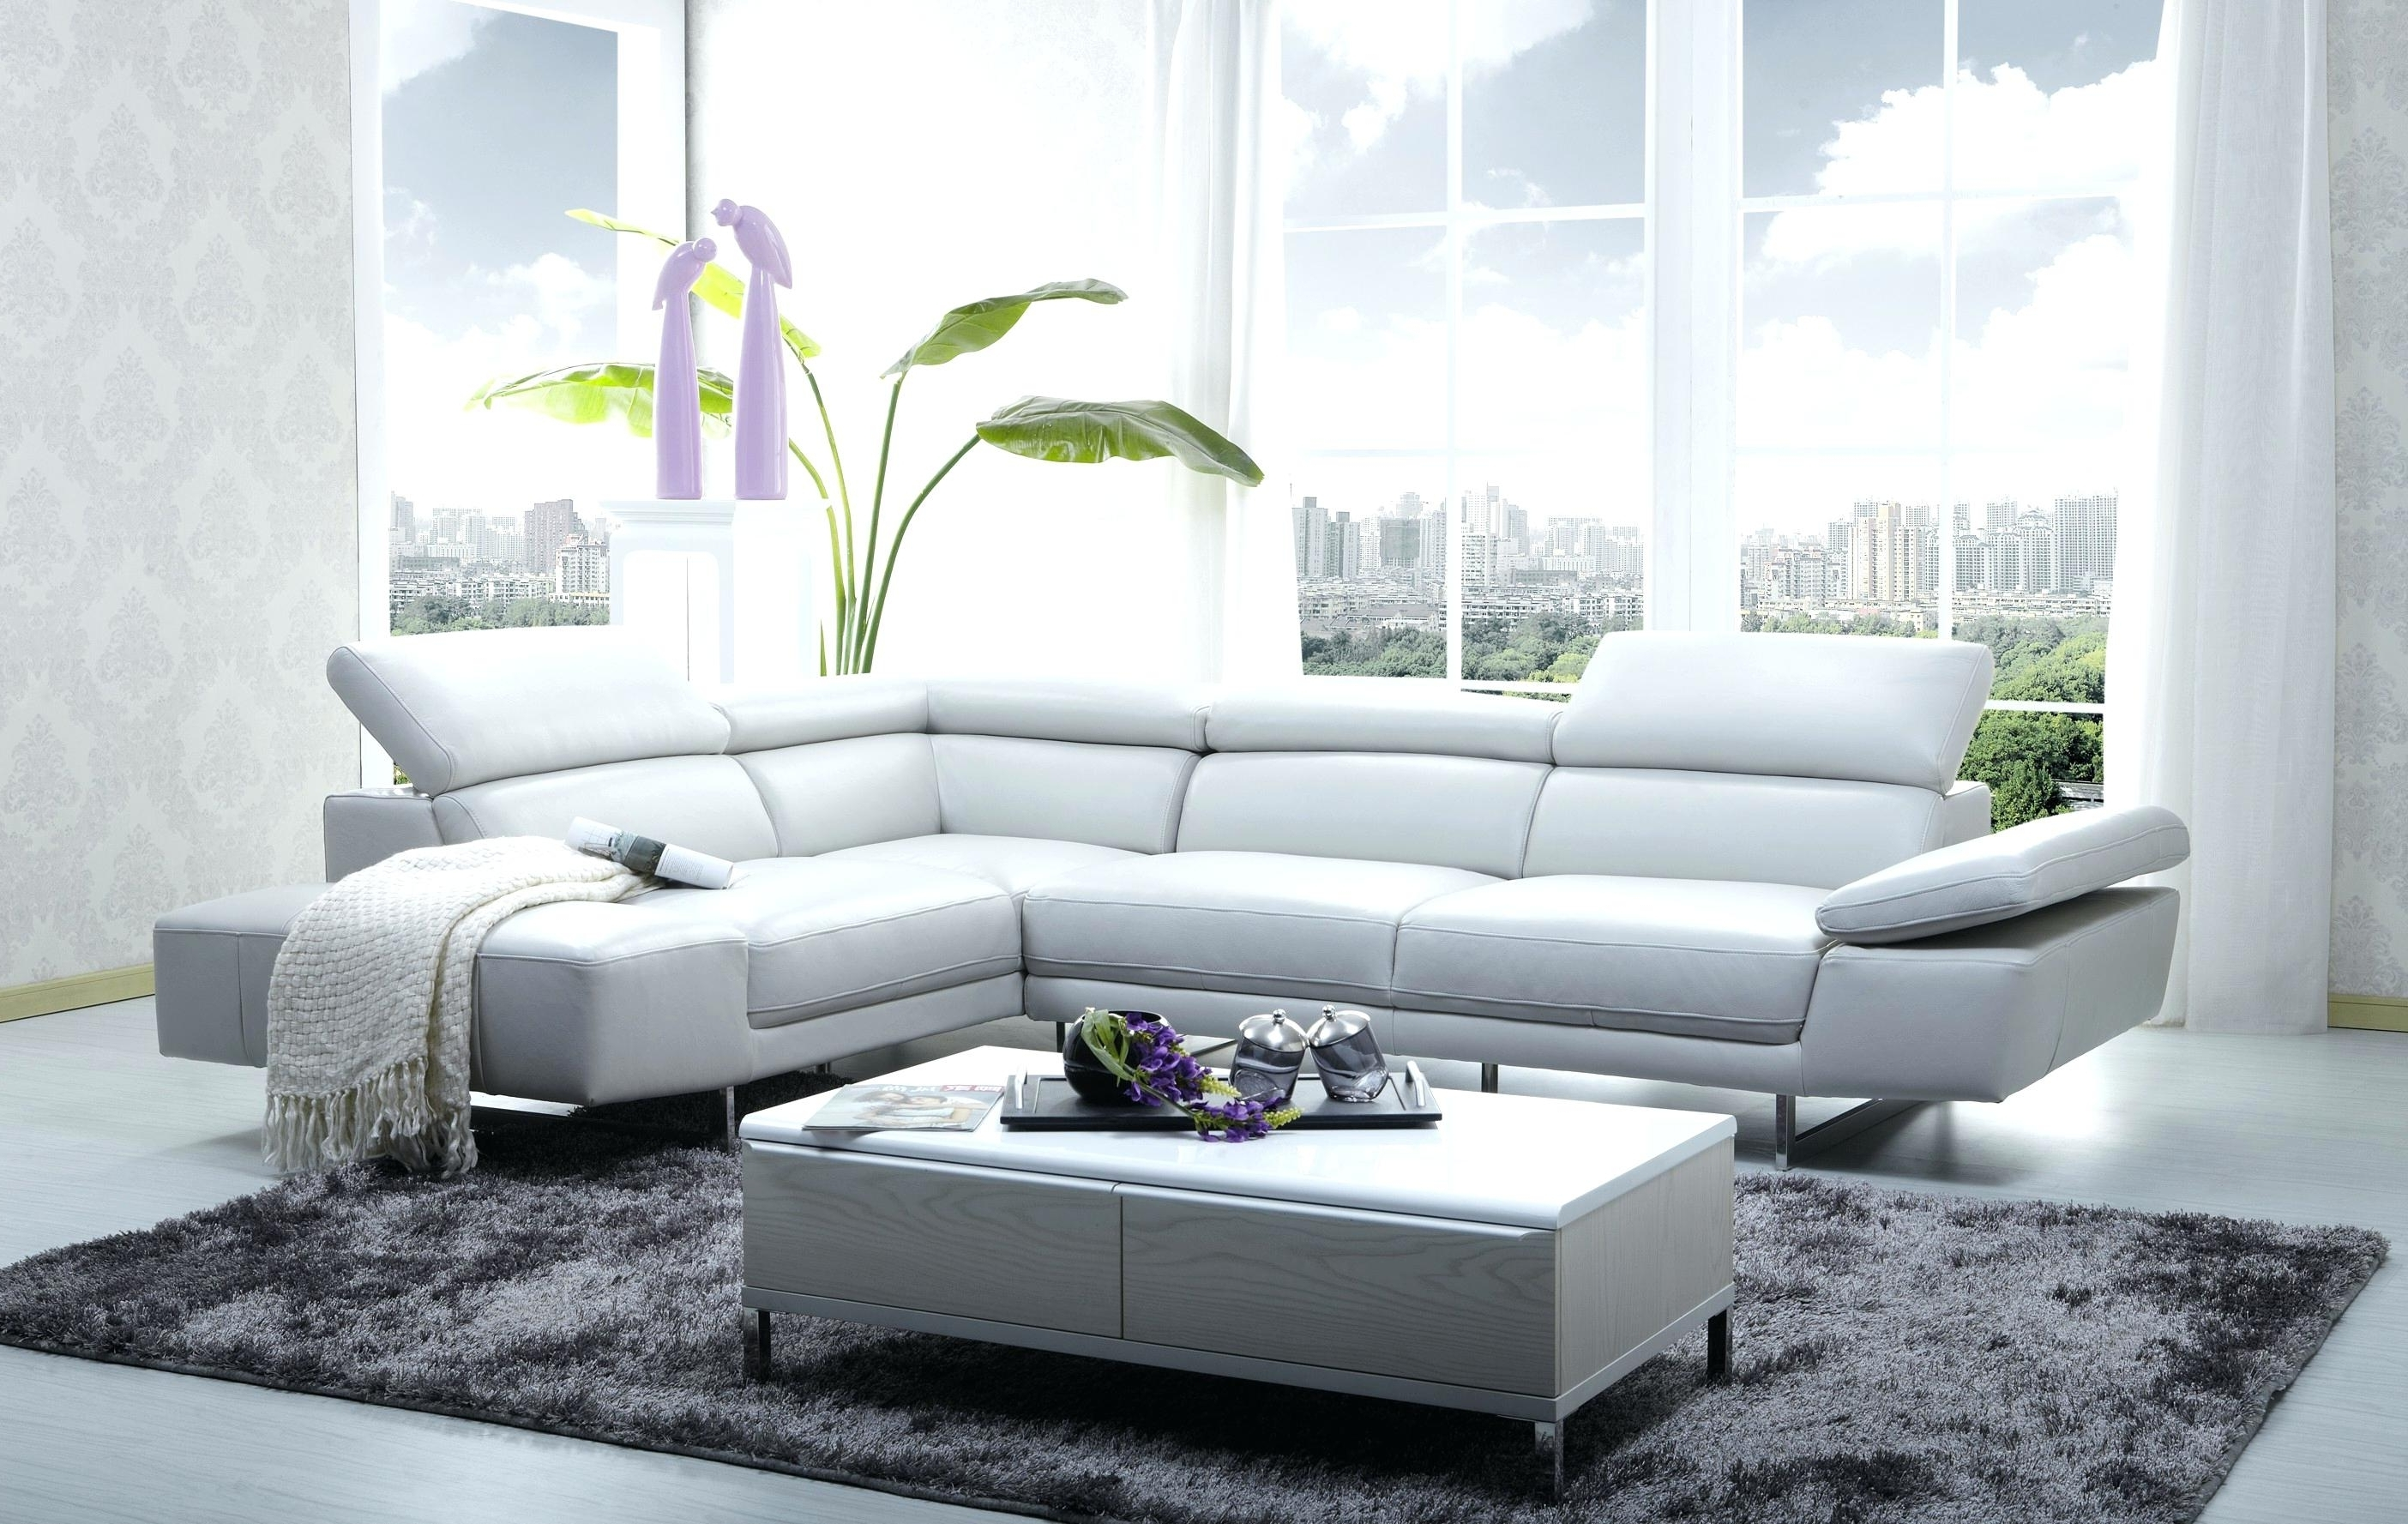 Incredible Modern Sectional Sofas Vancouver – Buildsimplehome For Most Current Vancouver Sectional Sofas (View 10 of 15)